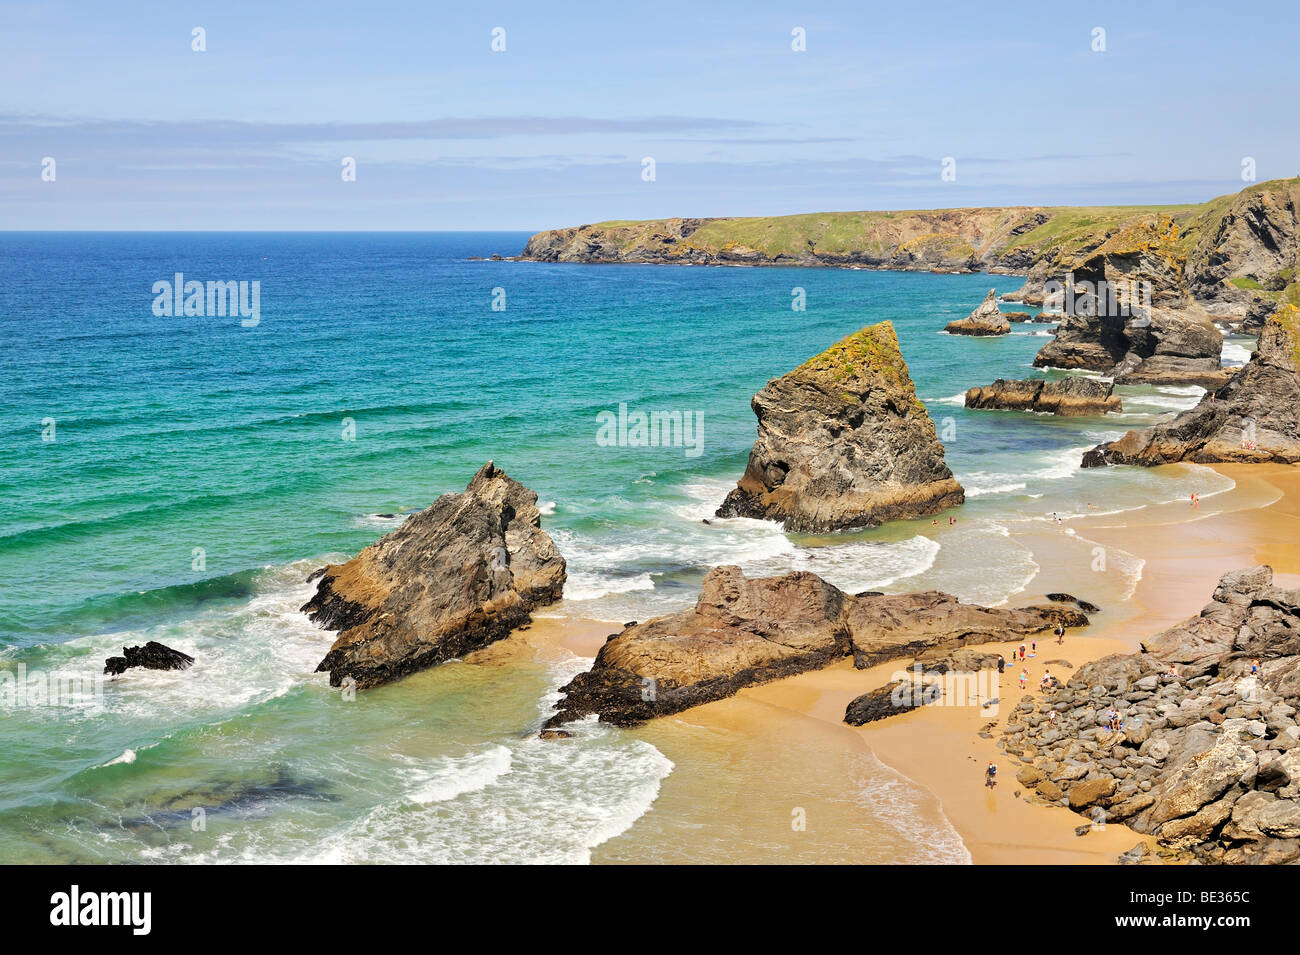 Cliff formation Bedruthan Steps in Newquay on the north coast of Cornwall, England, United Kingdom, Europe - Stock Image